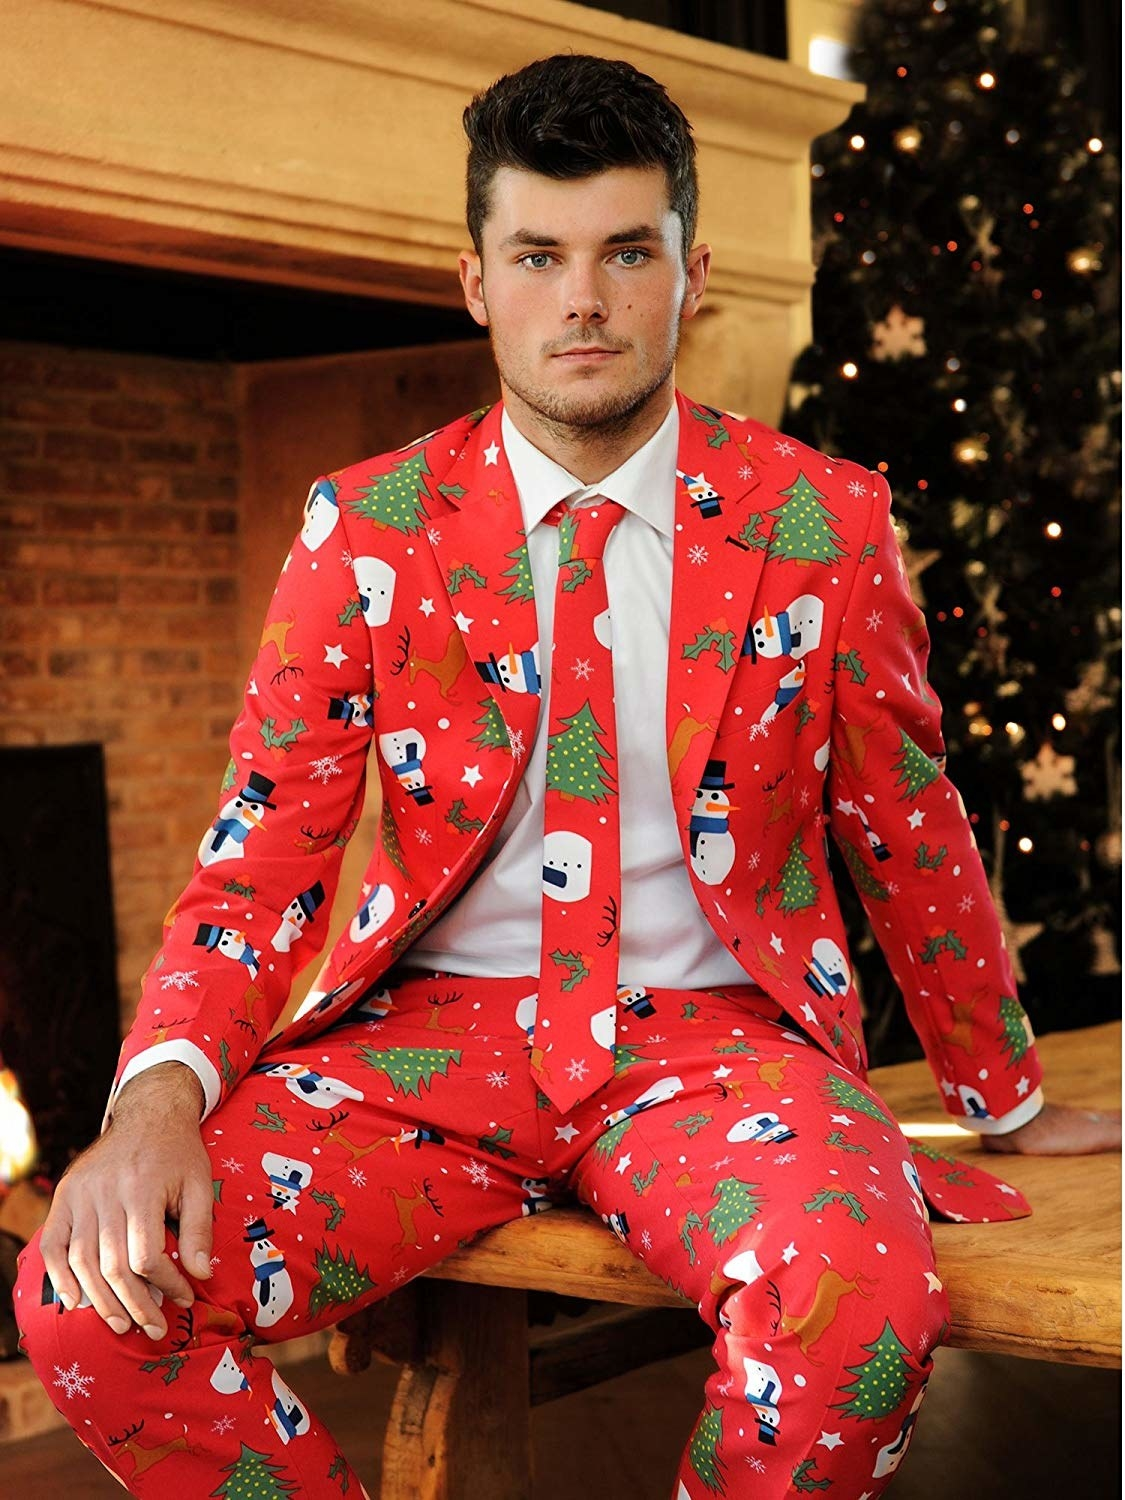 Model in the red suit with a snowman and christmas tree print